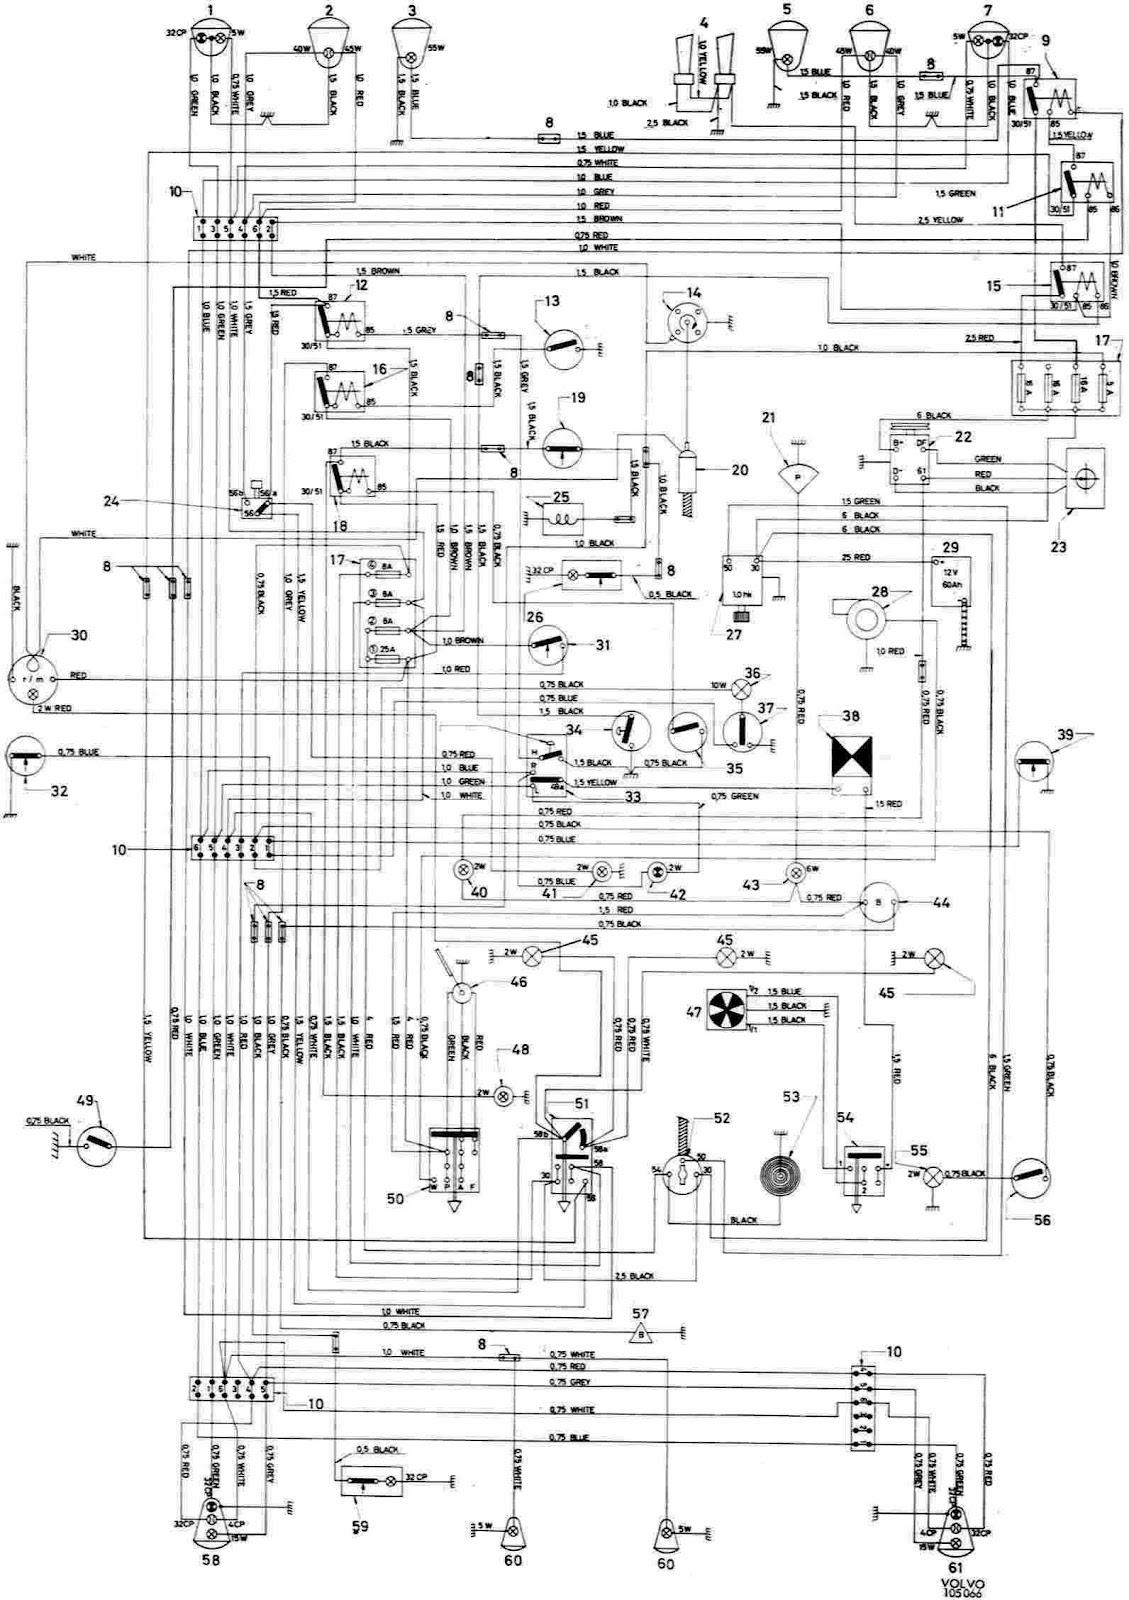 Volvo+123+GT+Complete+Wiring+Diagram 2005 volvo s40 wiring diagram volvo s40 steering diagram \u2022 wiring volvo xc90 stereo wiring diagram at edmiracle.co